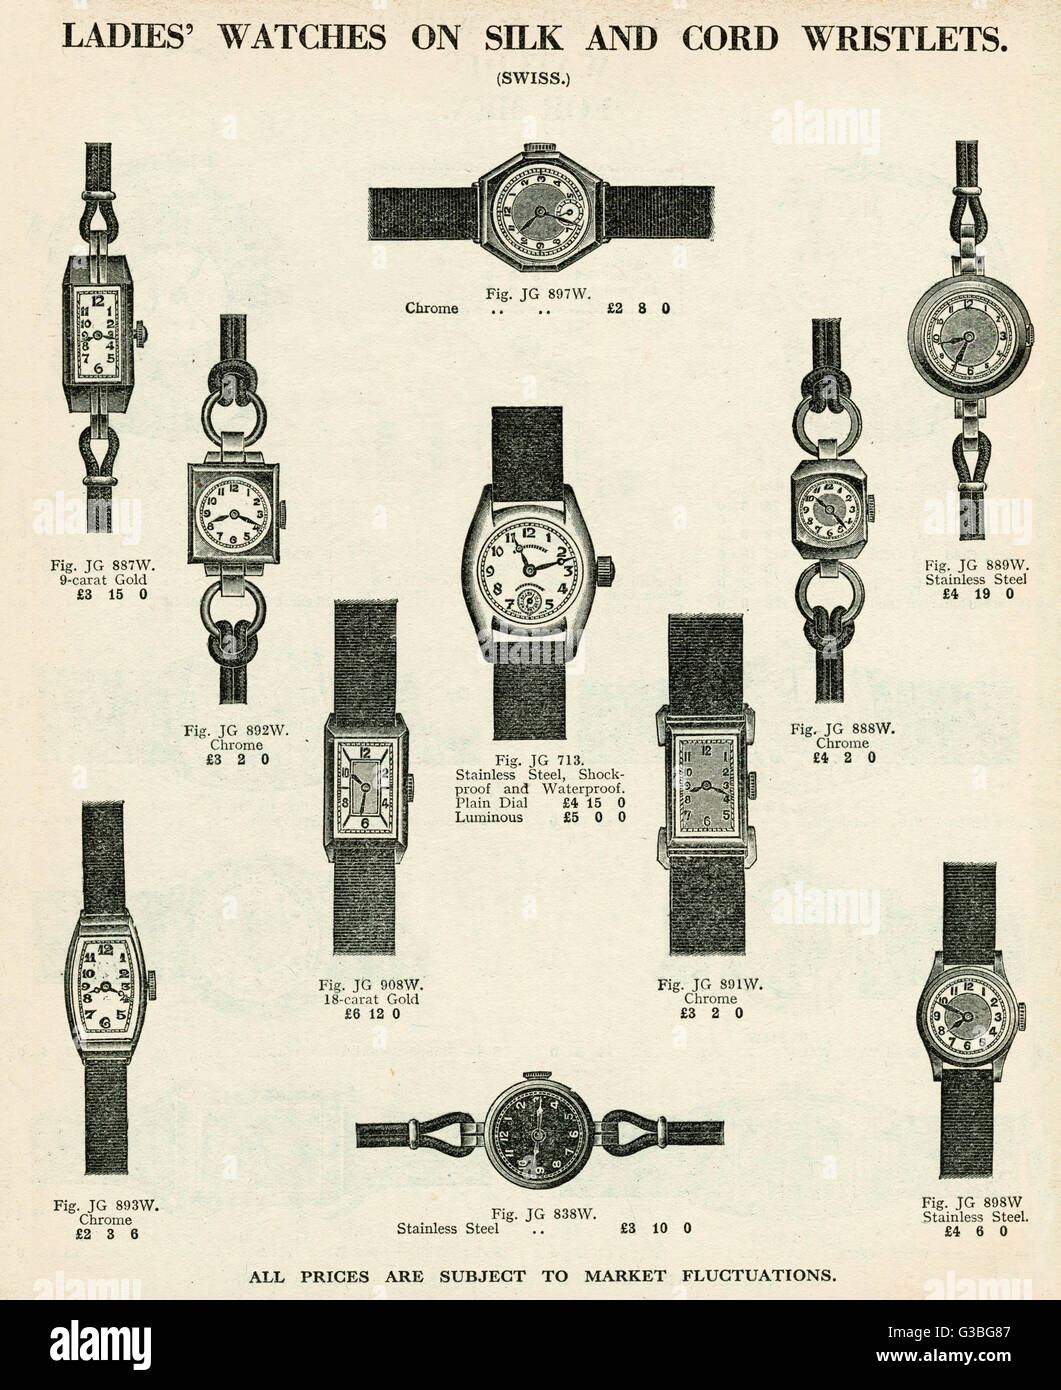 A selection of women's wristwatches with silk and cord straps.  Products for Army & Navy catalogue. - Stock Image